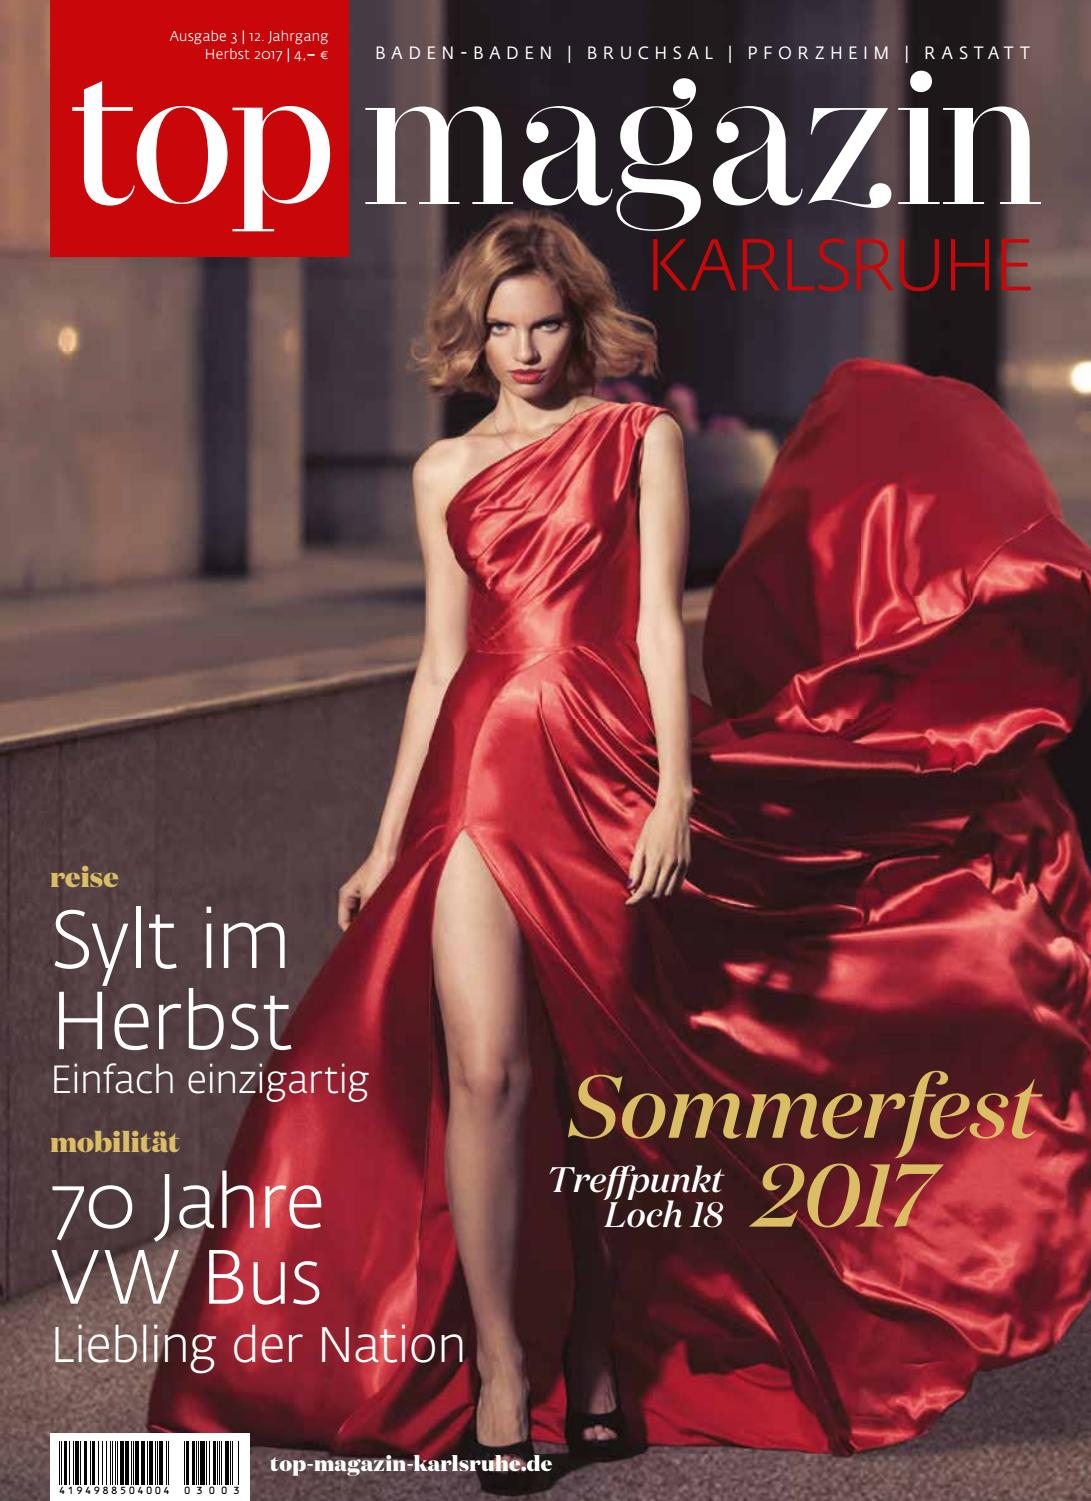 Top Magazin Karlsruhe Herbst 2017 by Top Magazin - issuu